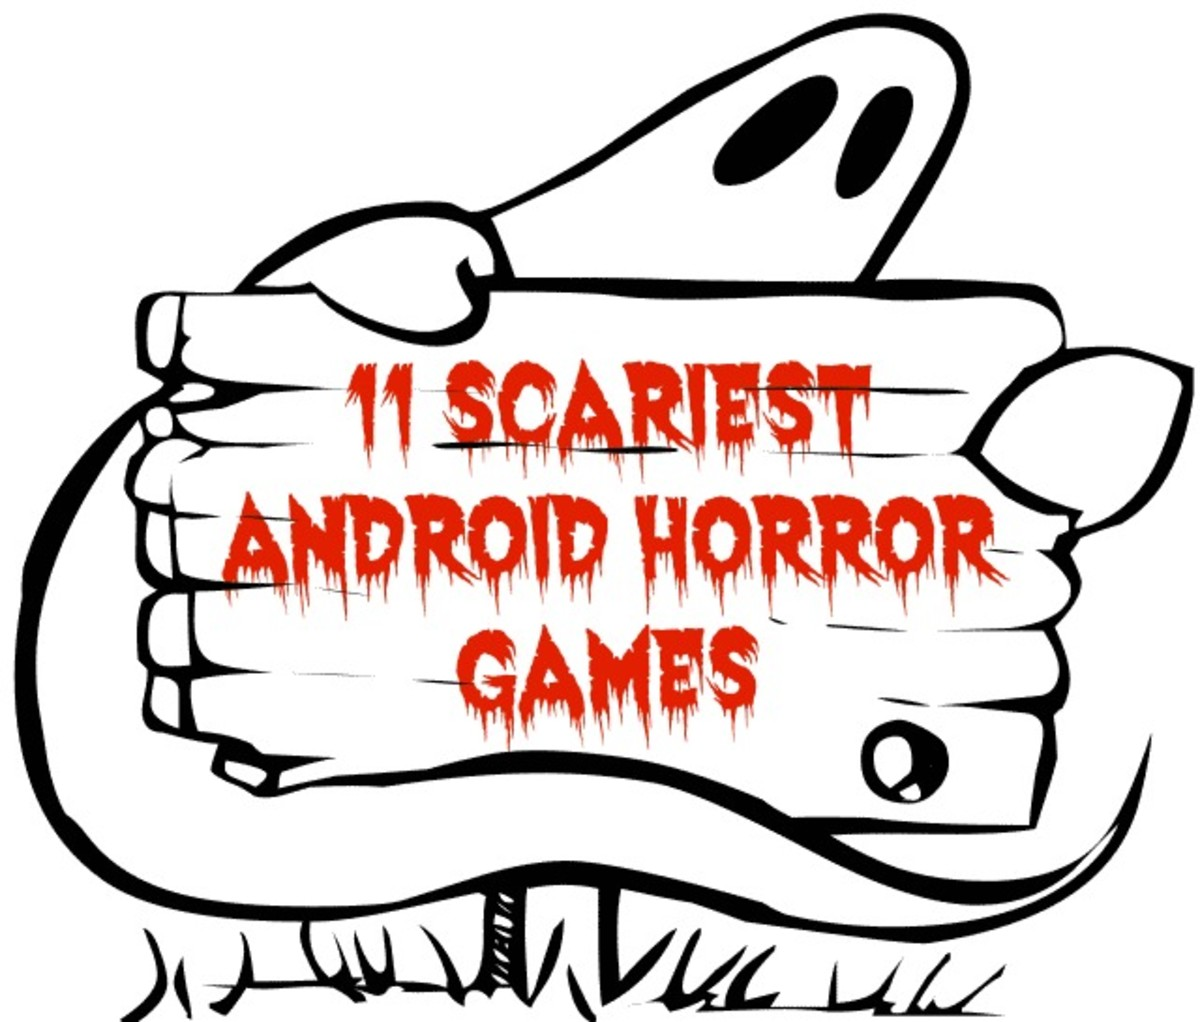 11 Scariest Android Horror Games